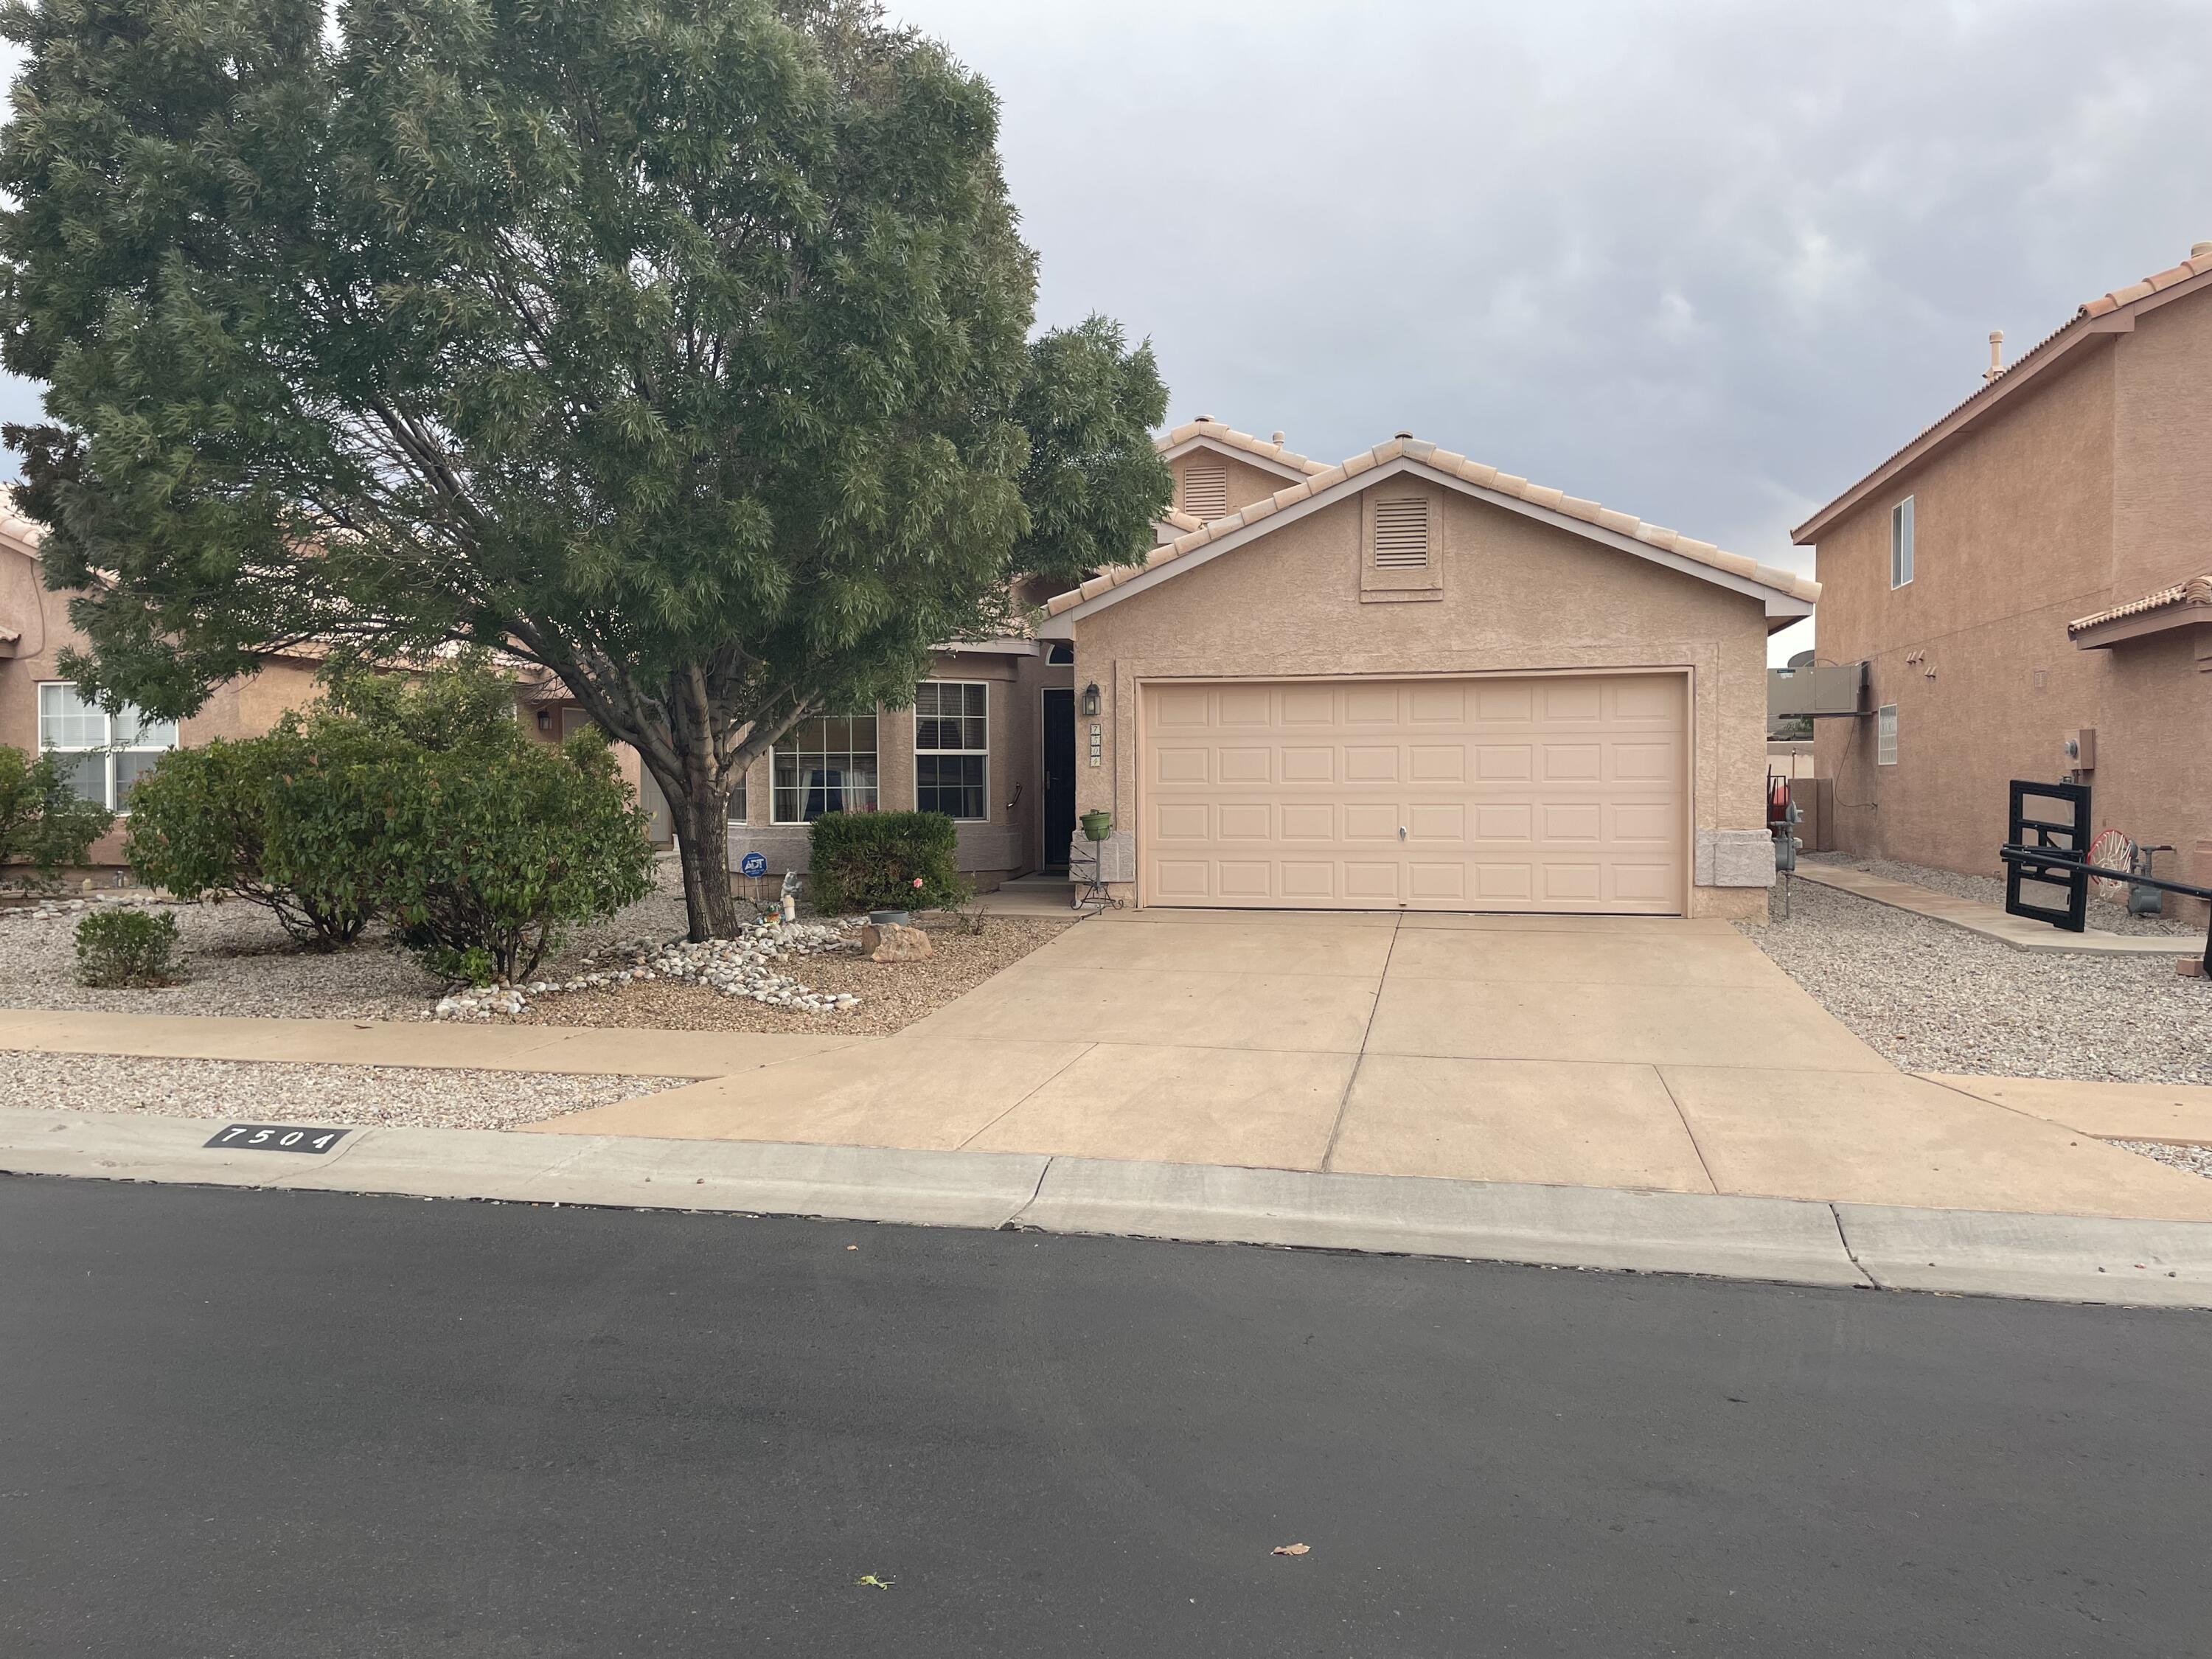 Encanto Village gated community is an oasis in SW Albuquerque. This single story home features two large living areas with an open floor design. The primary suite is expansive with a large tub and a huge closet. Long lasting tile roof, refrigerated a/c. A healthy peach tree in the backyard will provide for all your baking needs.